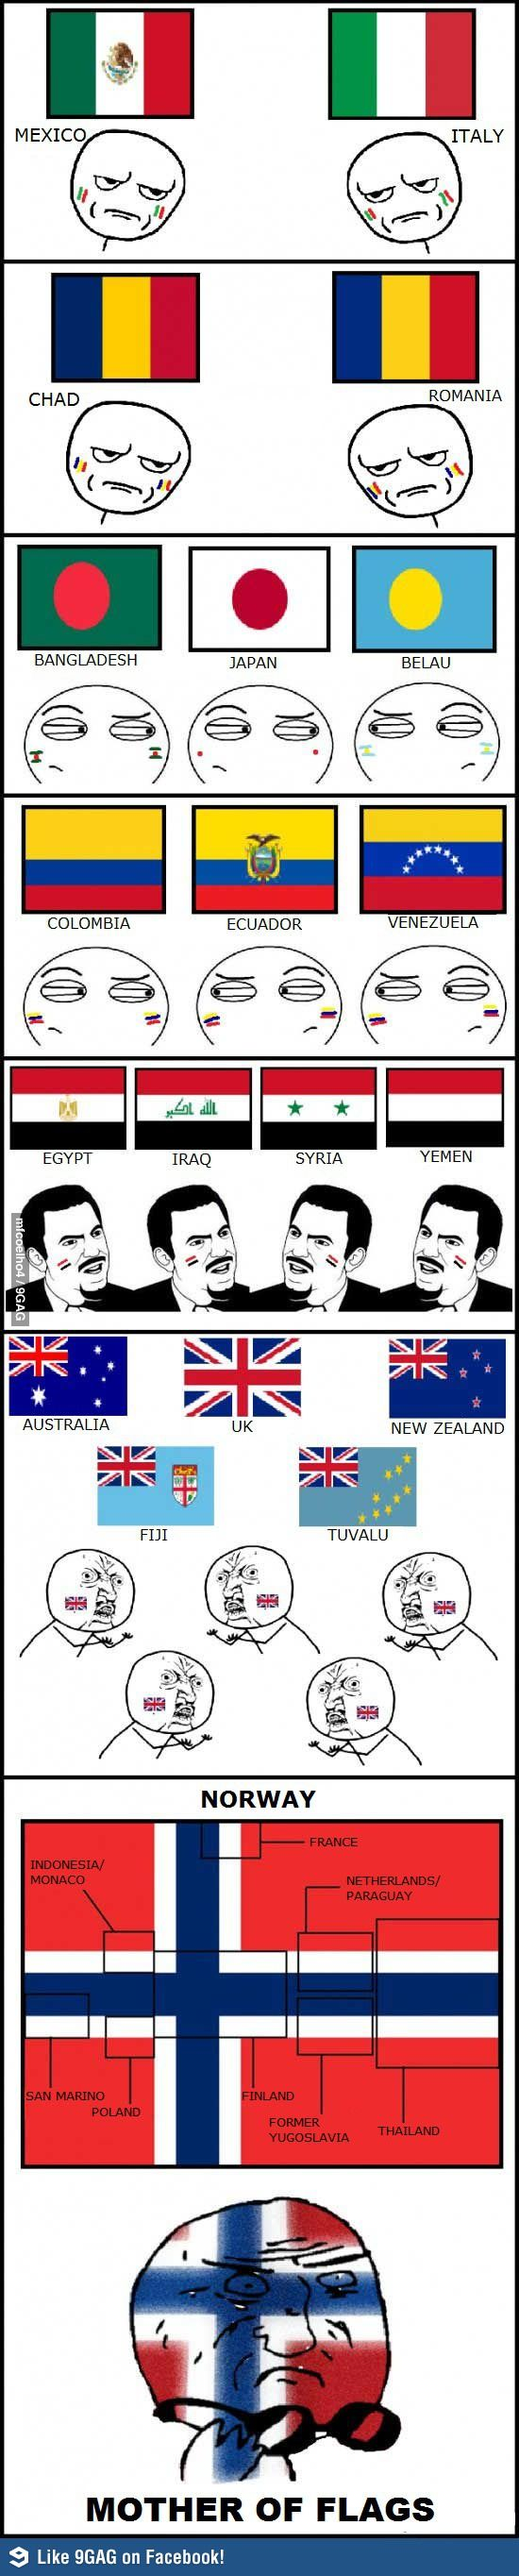 Some flags around the world... oh wait!r the same.... thing hyahaha just  a international joke